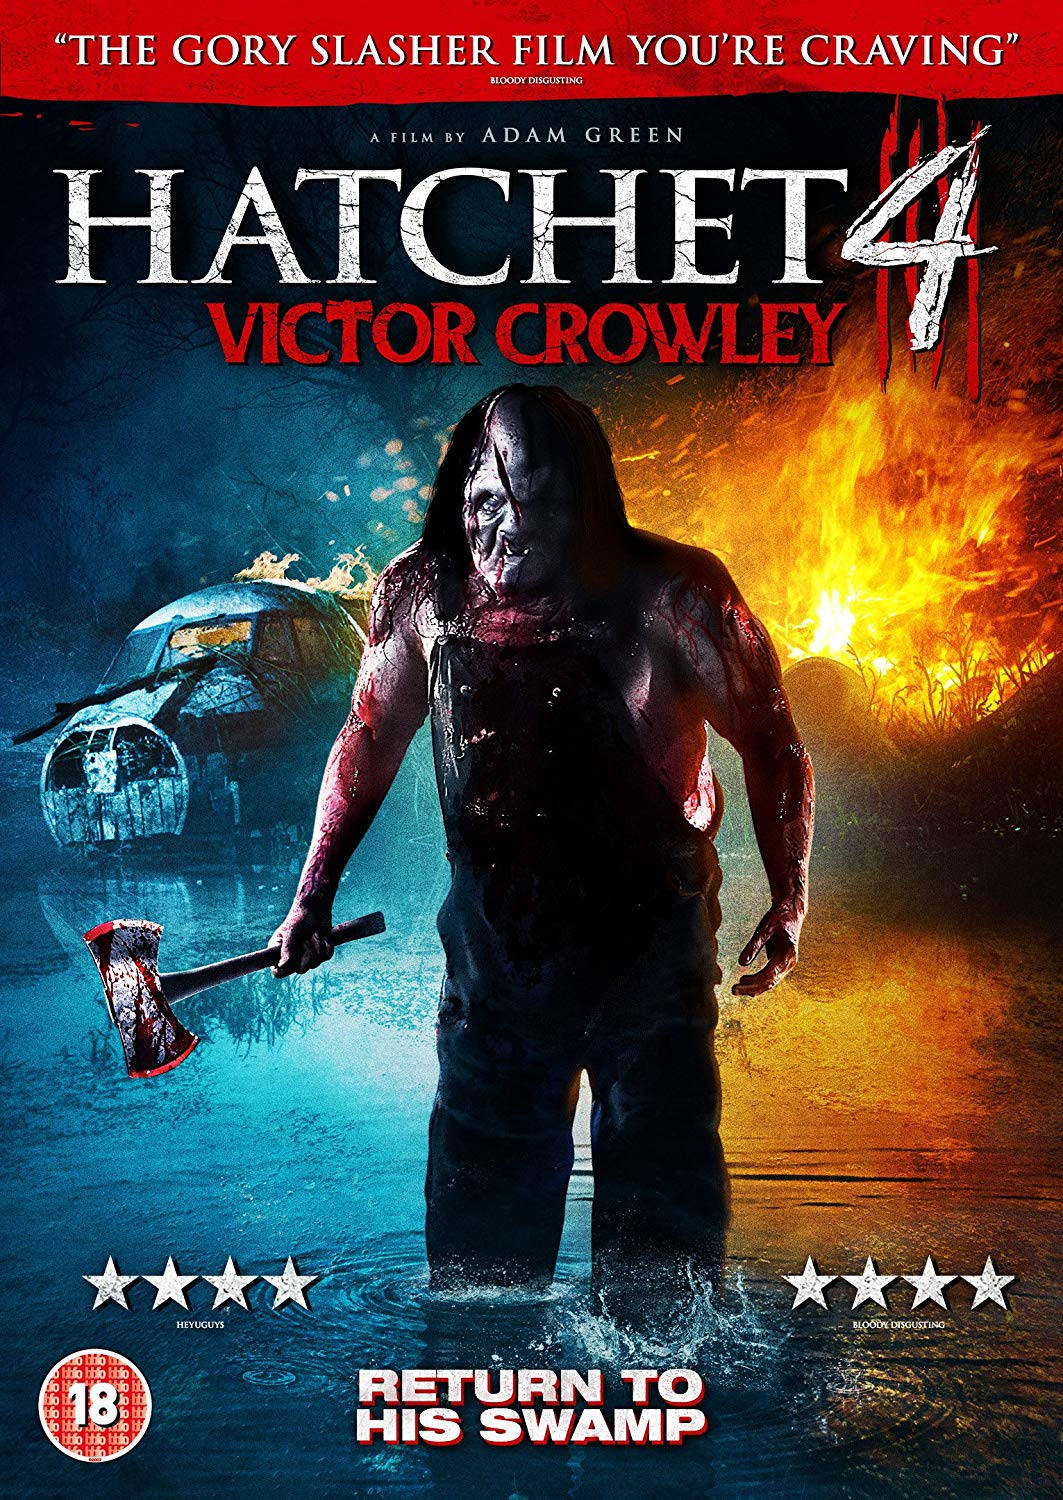 Hatchet 4 Victor Crowley UK DVD